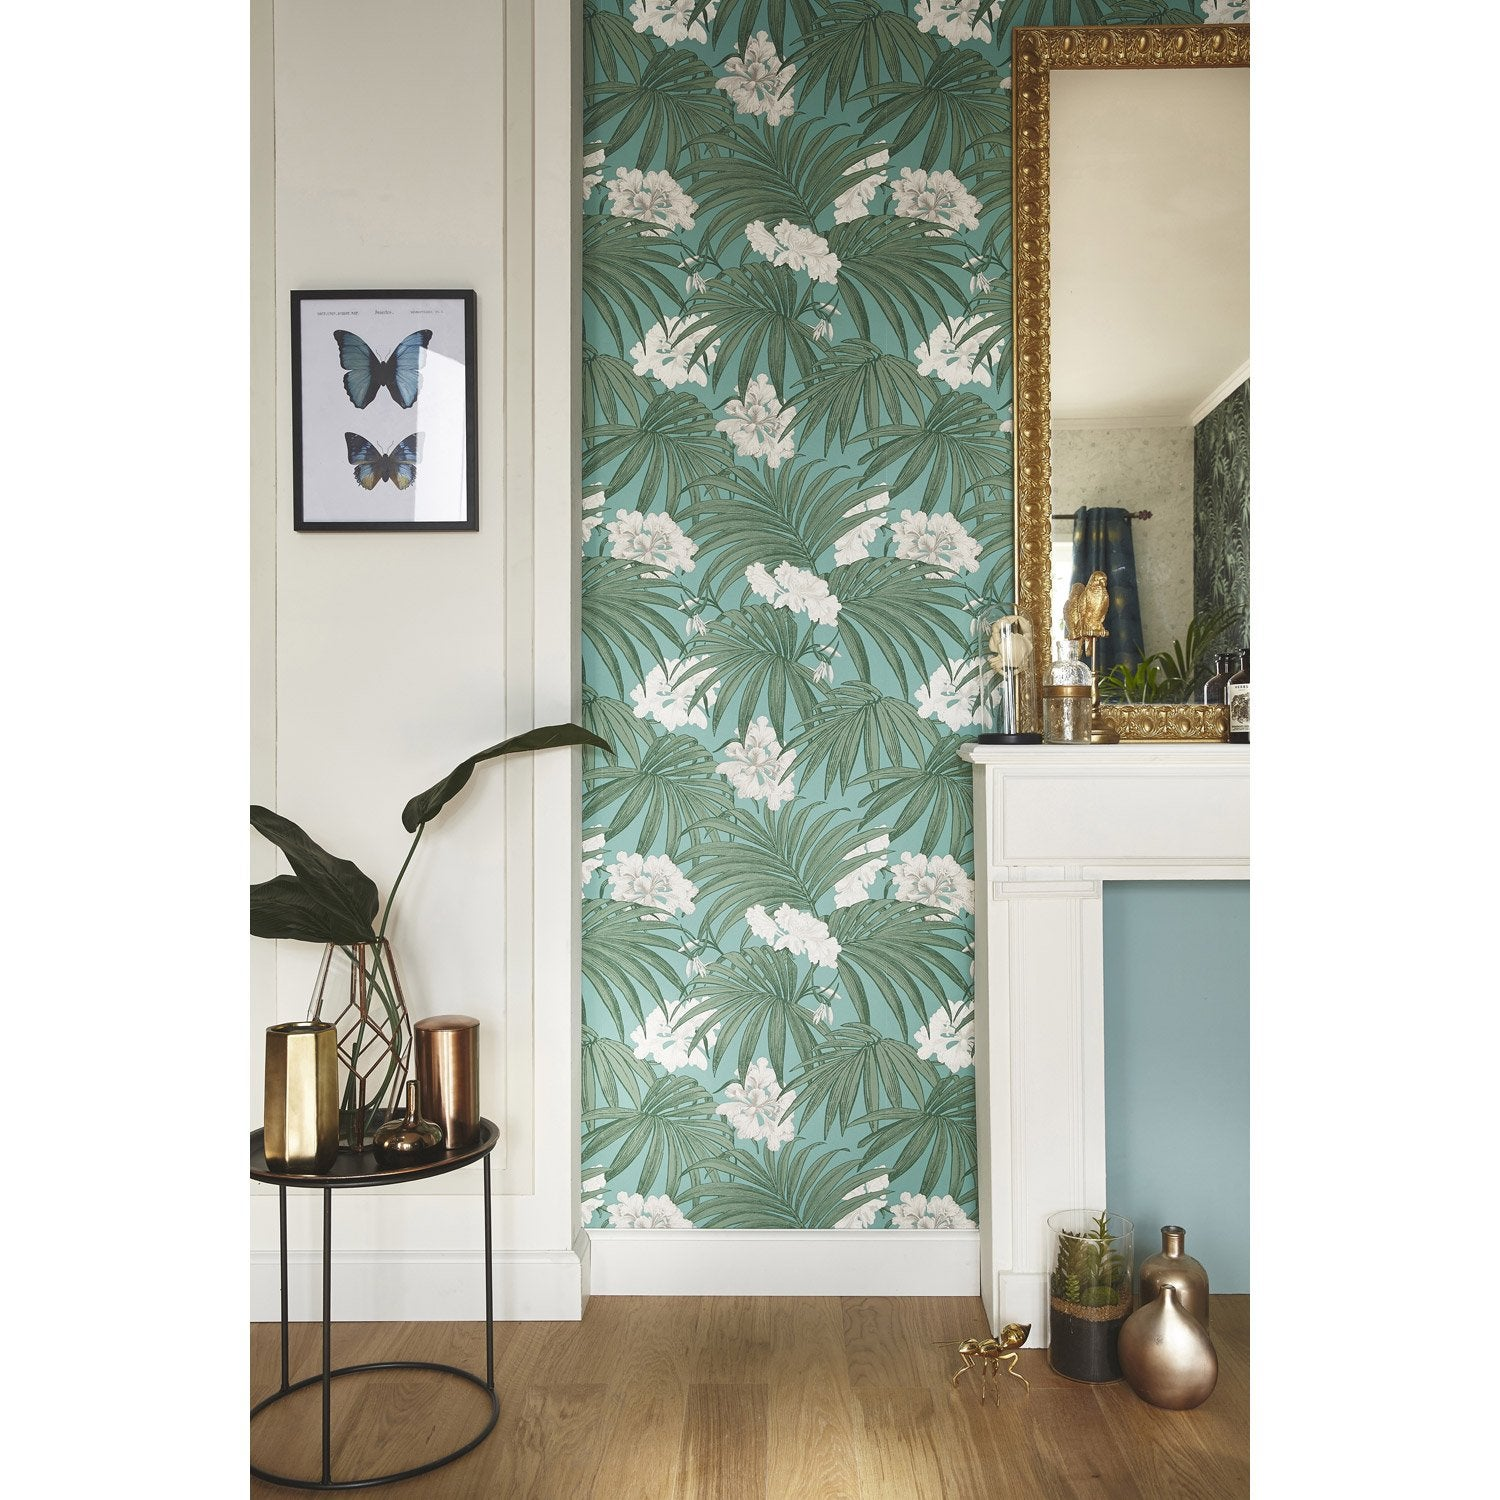 Papier peint intiss palm leaves vert leroy merlin for Ventiladores de pared leroy merlin